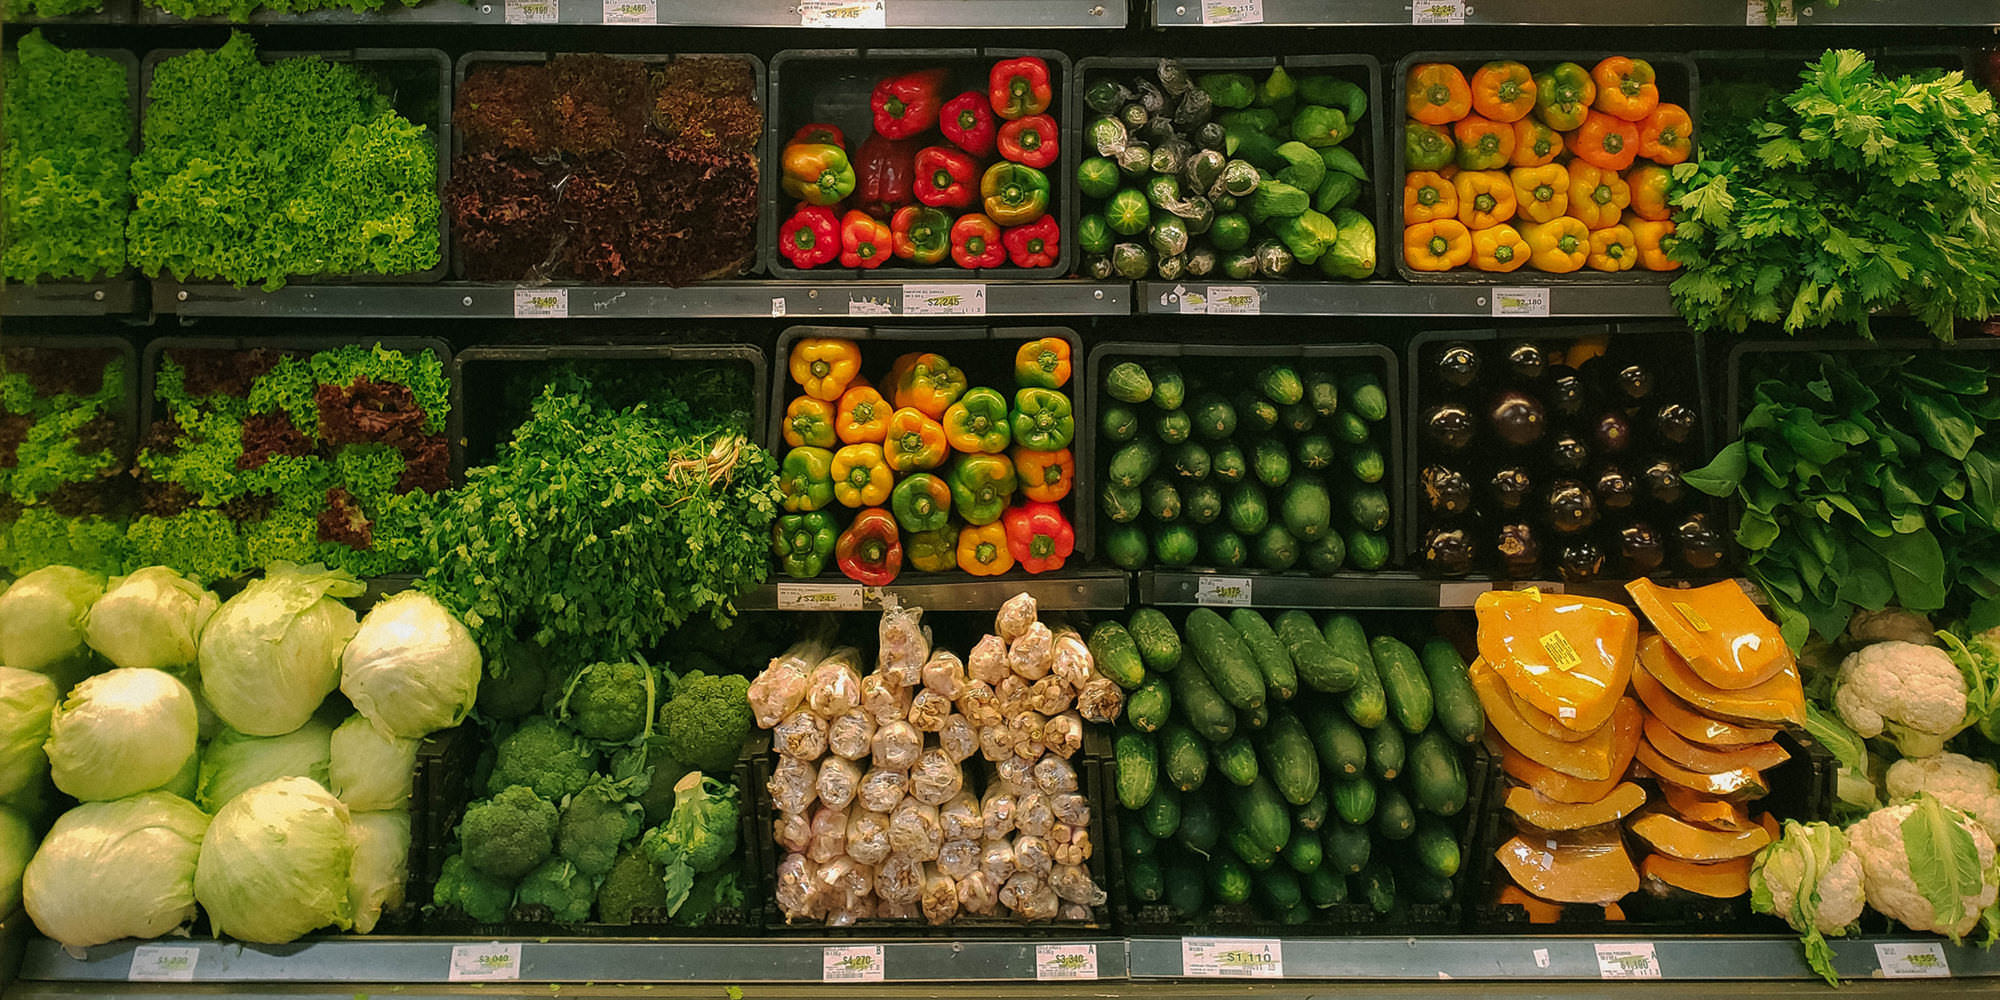 An organized grocery store display of healthy food: cucumbers, peppers, eggplant, lettuce, cauliflower, and more.